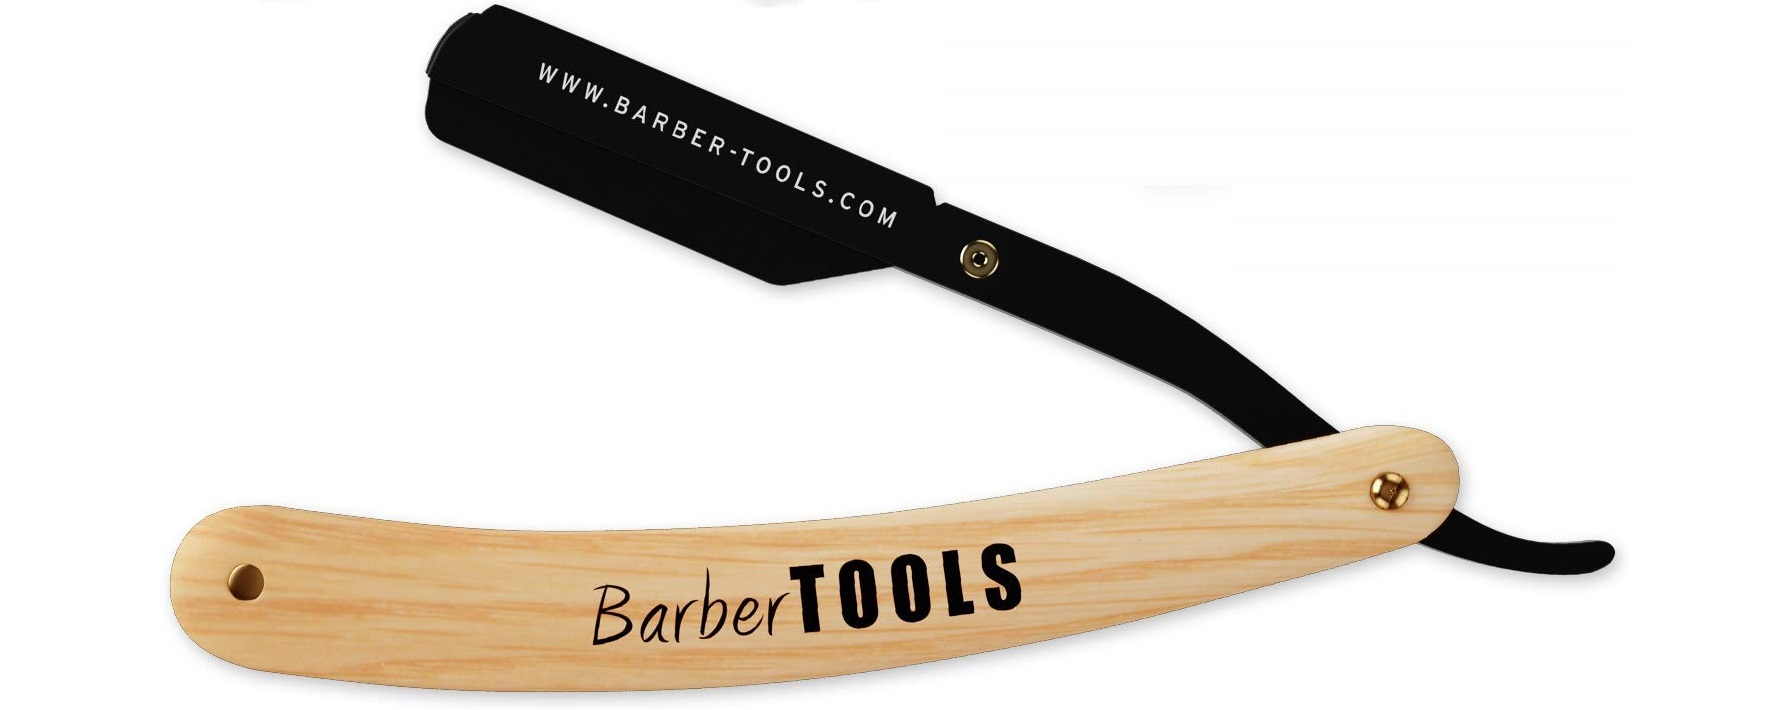 Rasoir coupe-choux Barber Tools